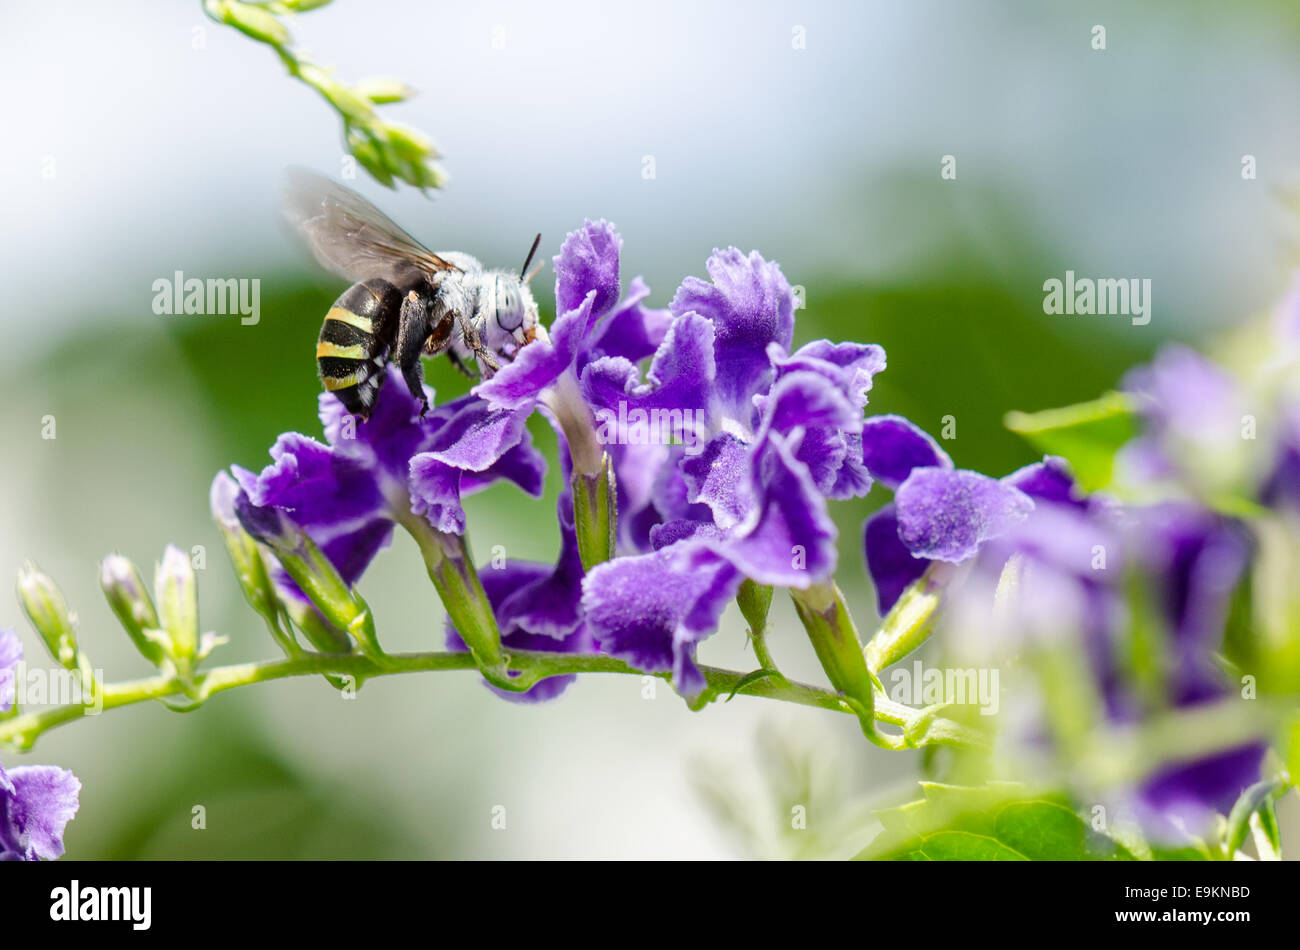 White Banded Digger Bee Amegilla Quadrifasciata Is A Species Of Bees Eating Nectar On Blue Flower Taken In Thailand